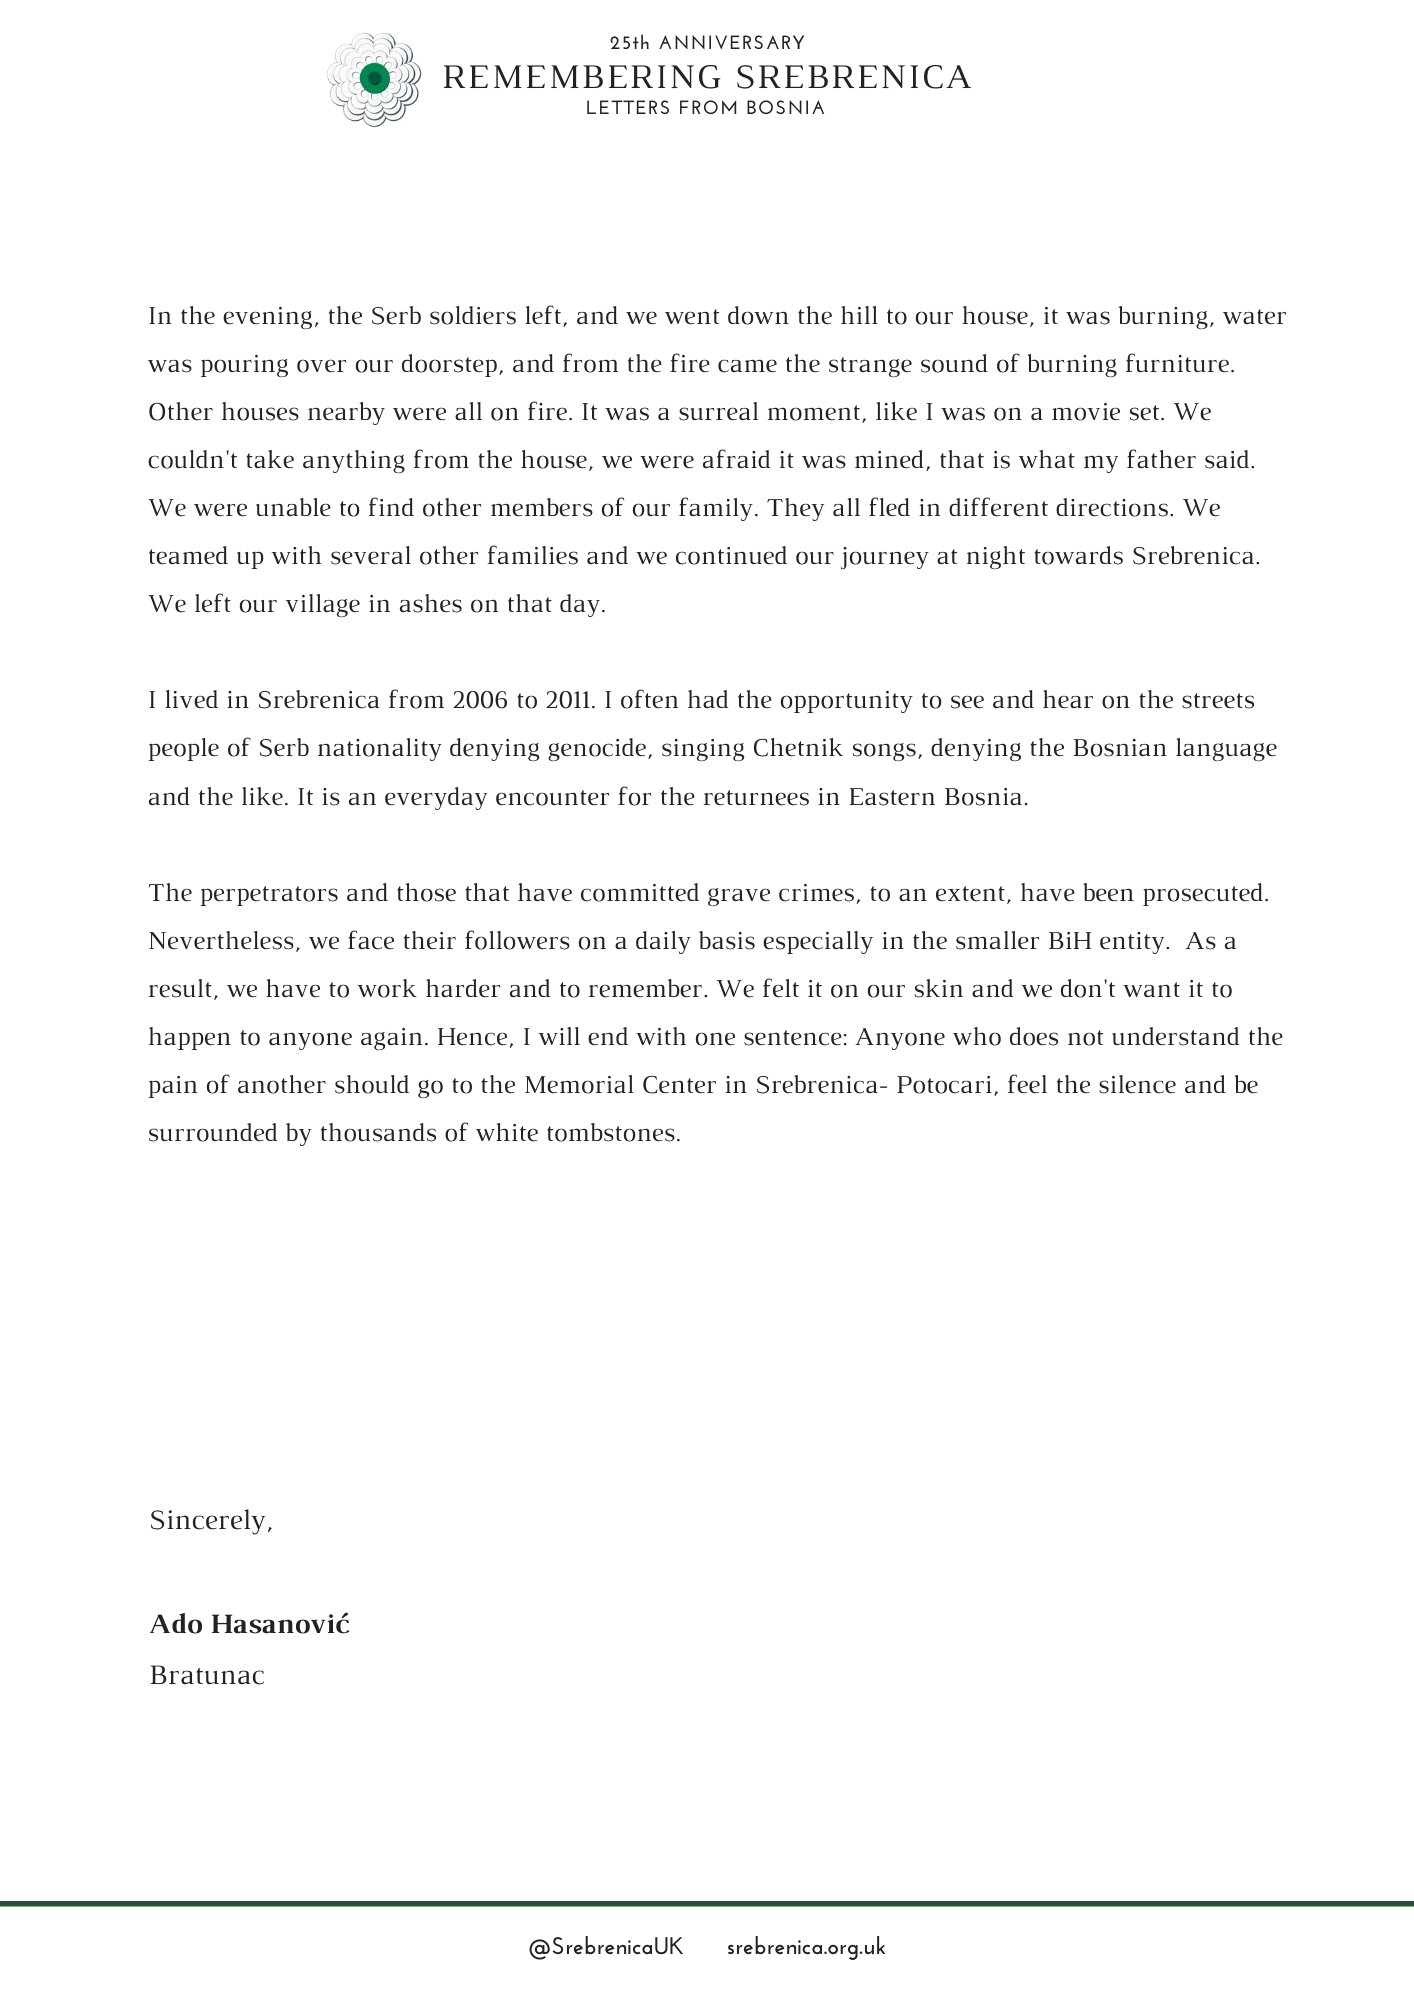 Remembering Srebrenica On Twitter This Letter From Bosnia Comes From Ado Hasanovic As He Tells Us His Story Of Surviving The Genocide We Found Ourselves In Dead Silence And Fear We Did